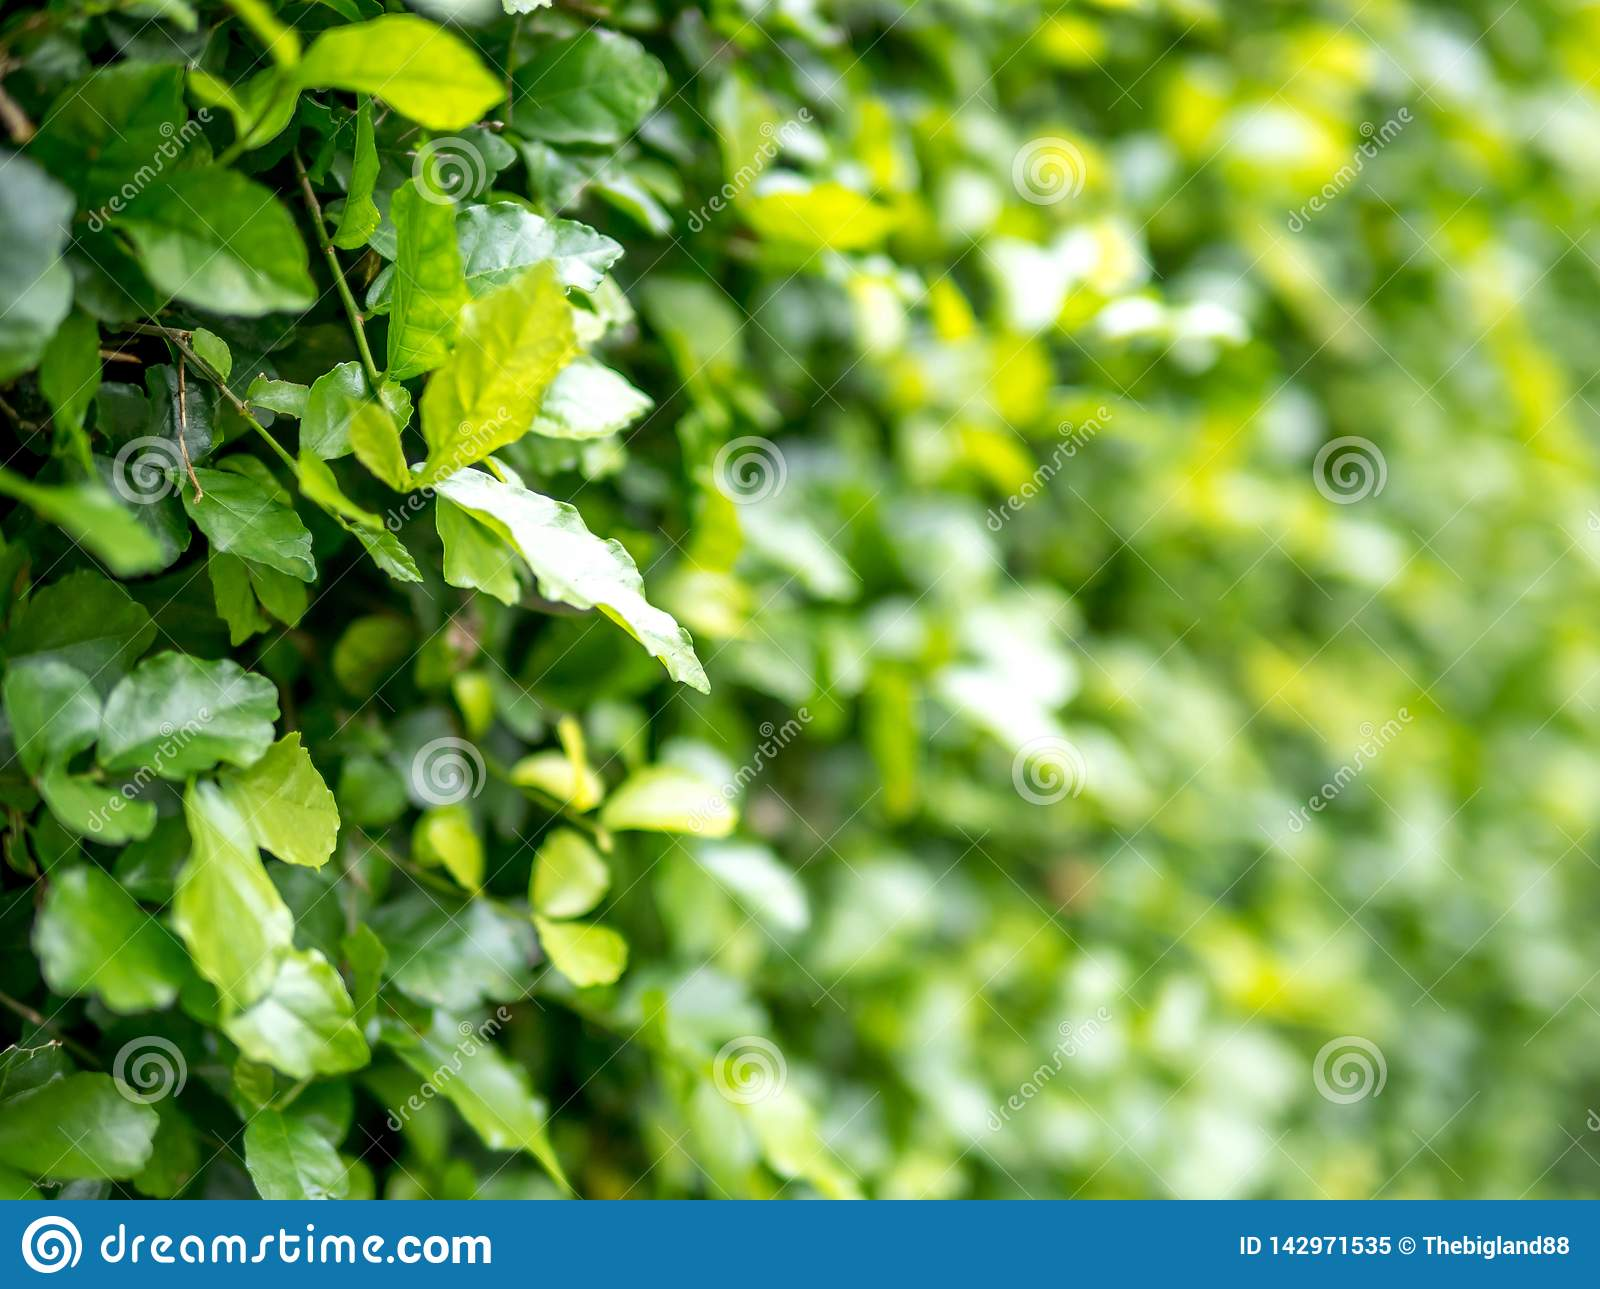 Close Up Nature View Of Green Leaf On Blurred Greenery